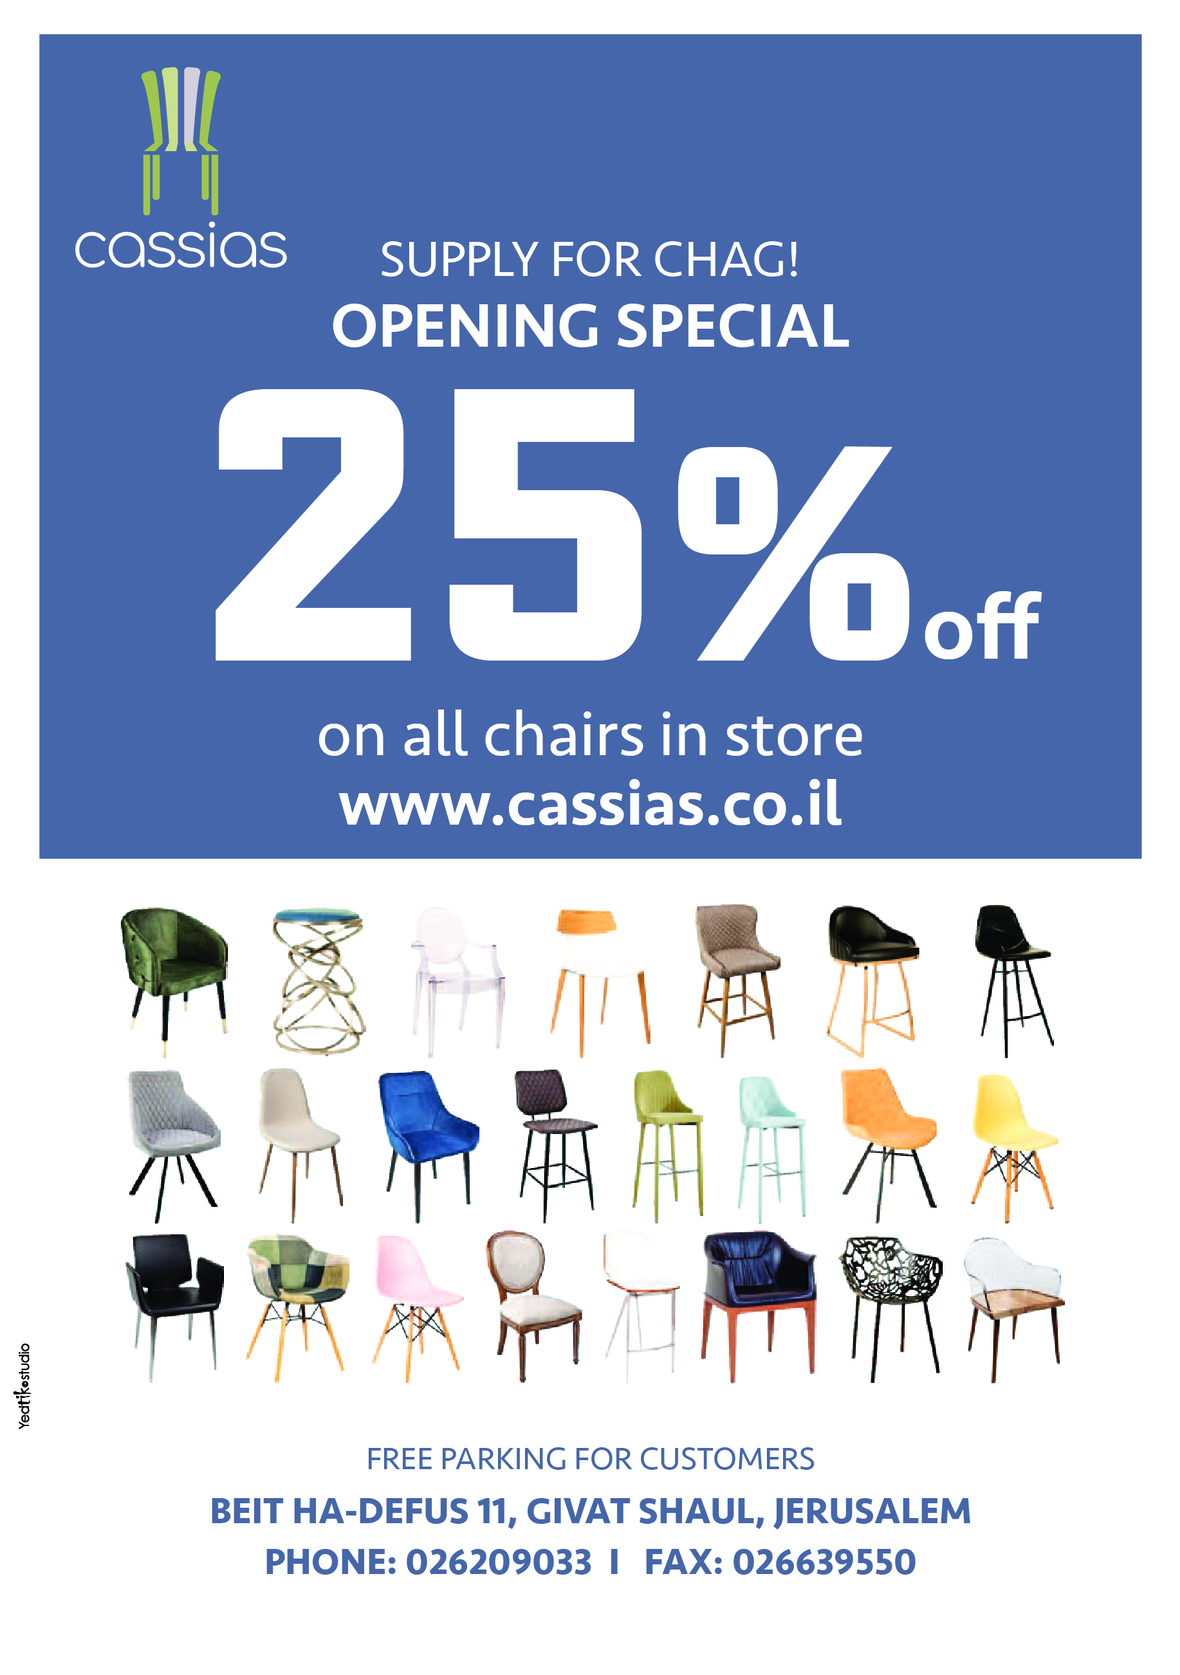 Casias chairs-01